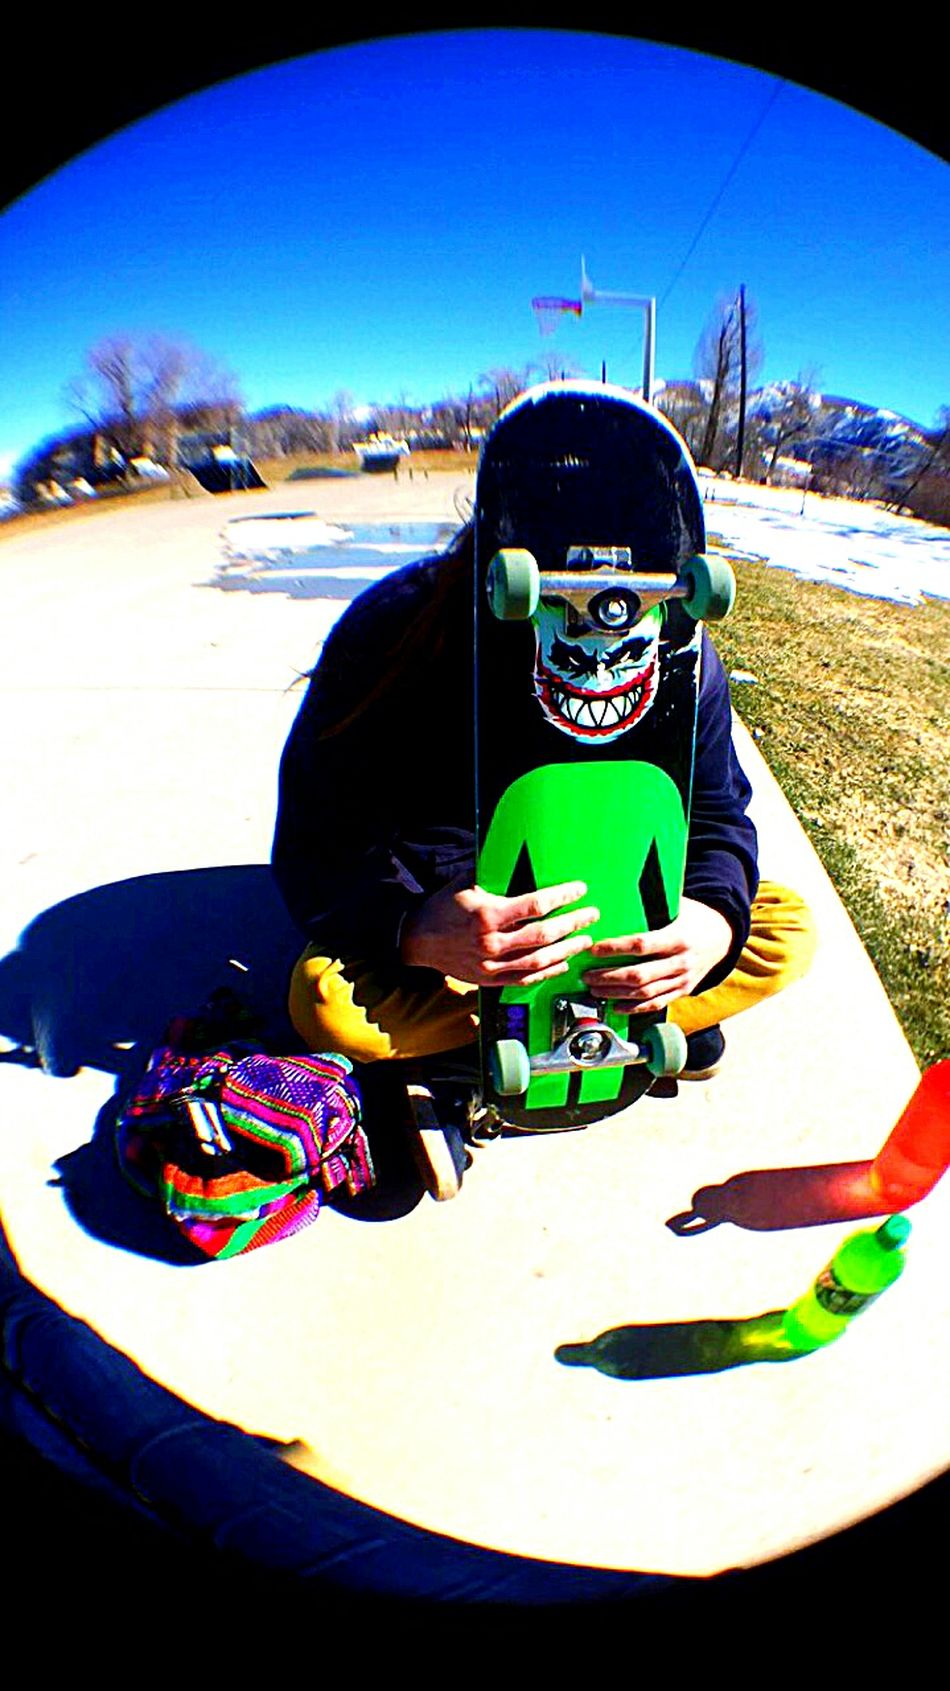 It was the the image of perfection that informed us of our flaws, before barbie we'd no concept of a perfect body. Hanging Out Enjoying Life Radical Utah UtahisRad Interesting Punk Abstract Spring 2016 Springtime Spring Sun Colorful Skateboarding Park Spitfire Skatepark Original Edits Good Memories ❤ Fun Showing Imperfection Skateboard Skate Punk Rock Original Poetry